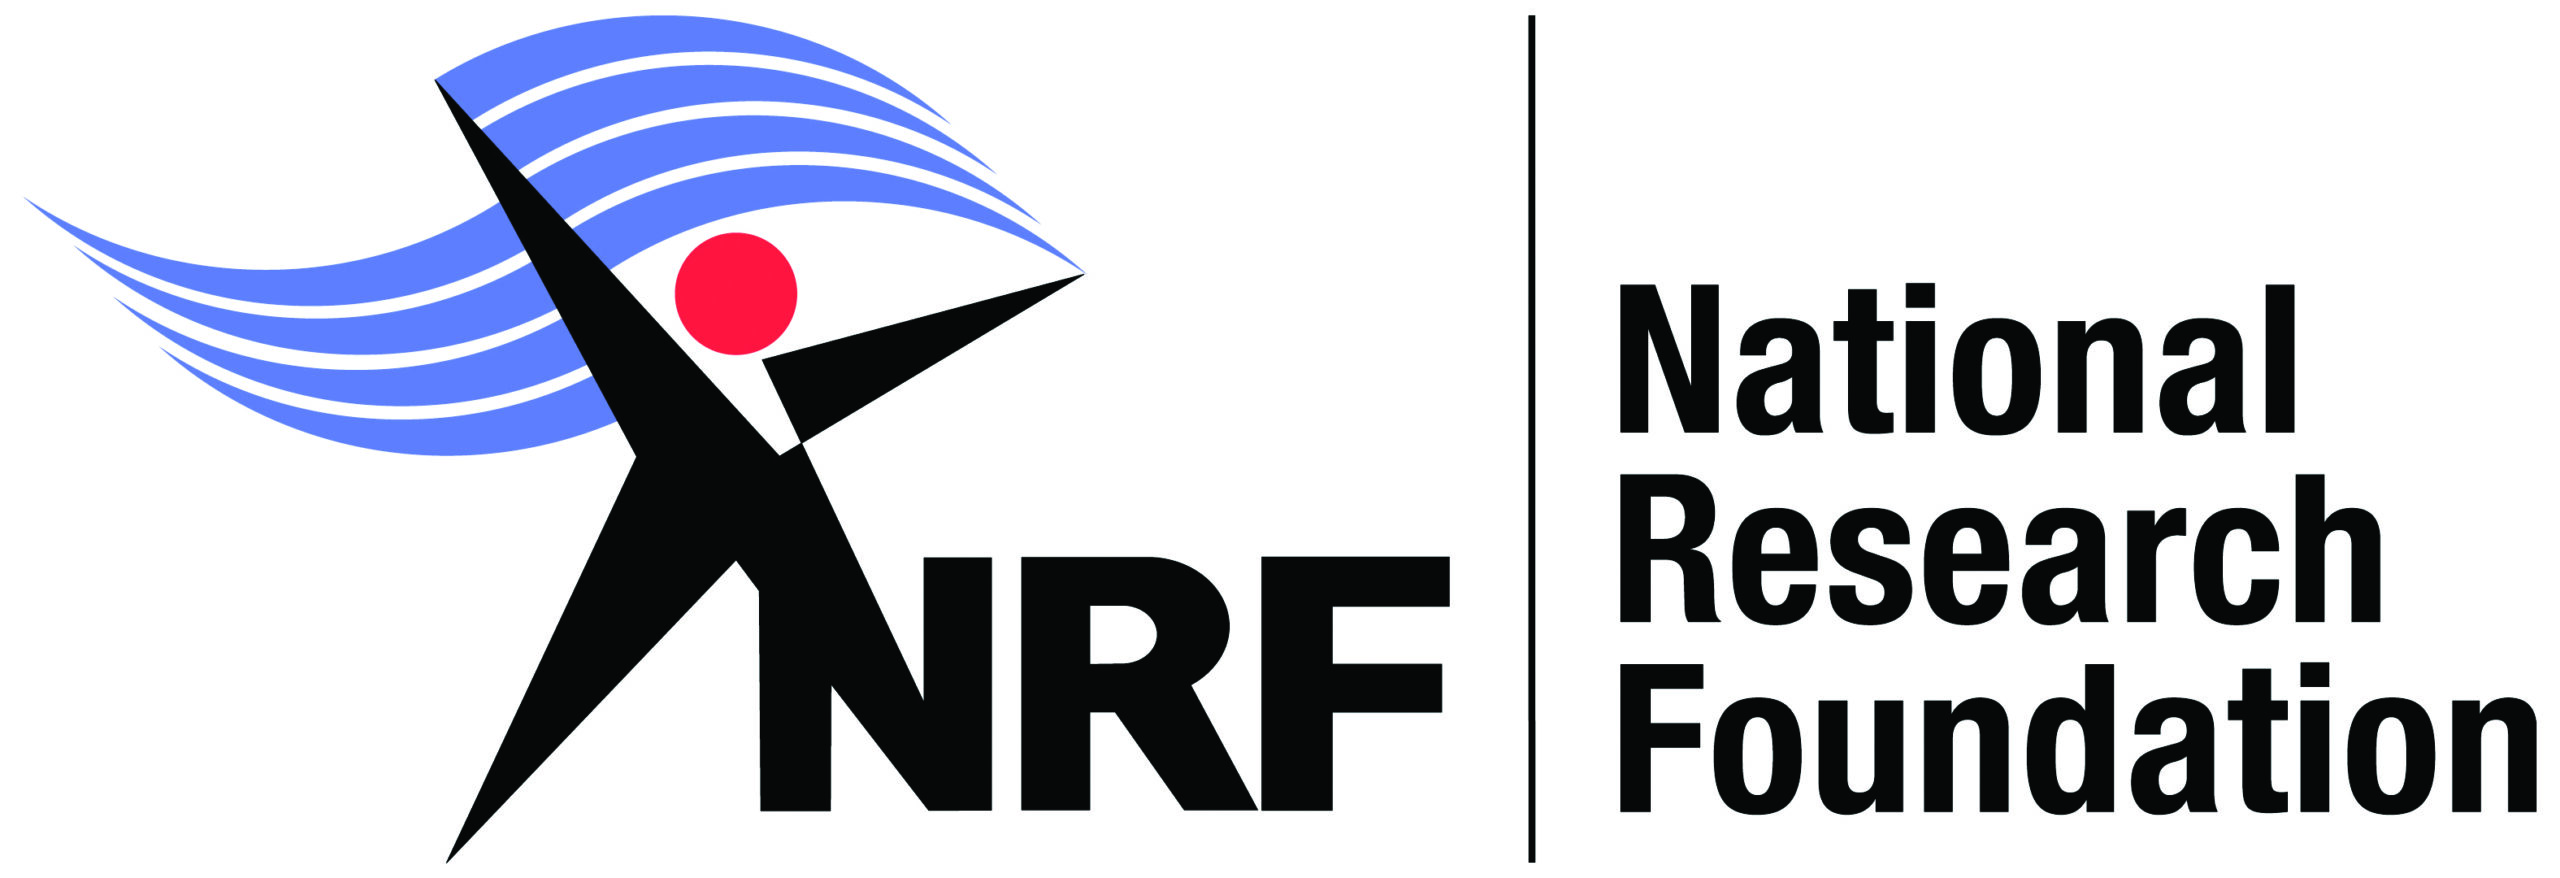 National Reserach Foundation